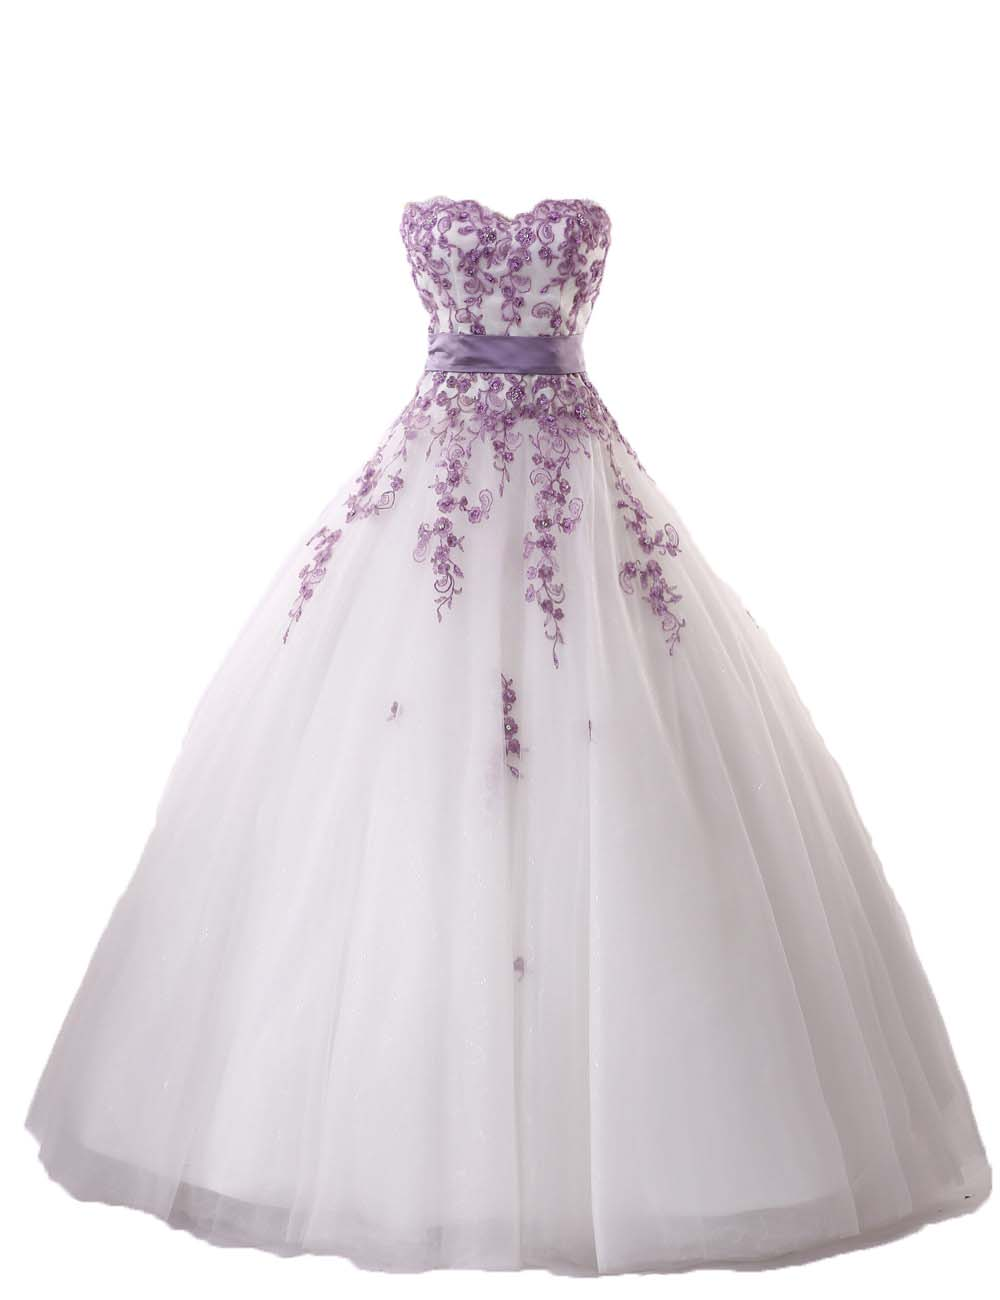 Online buy wholesale lilac wedding gowns from china lilac for Dress up wedding dresses